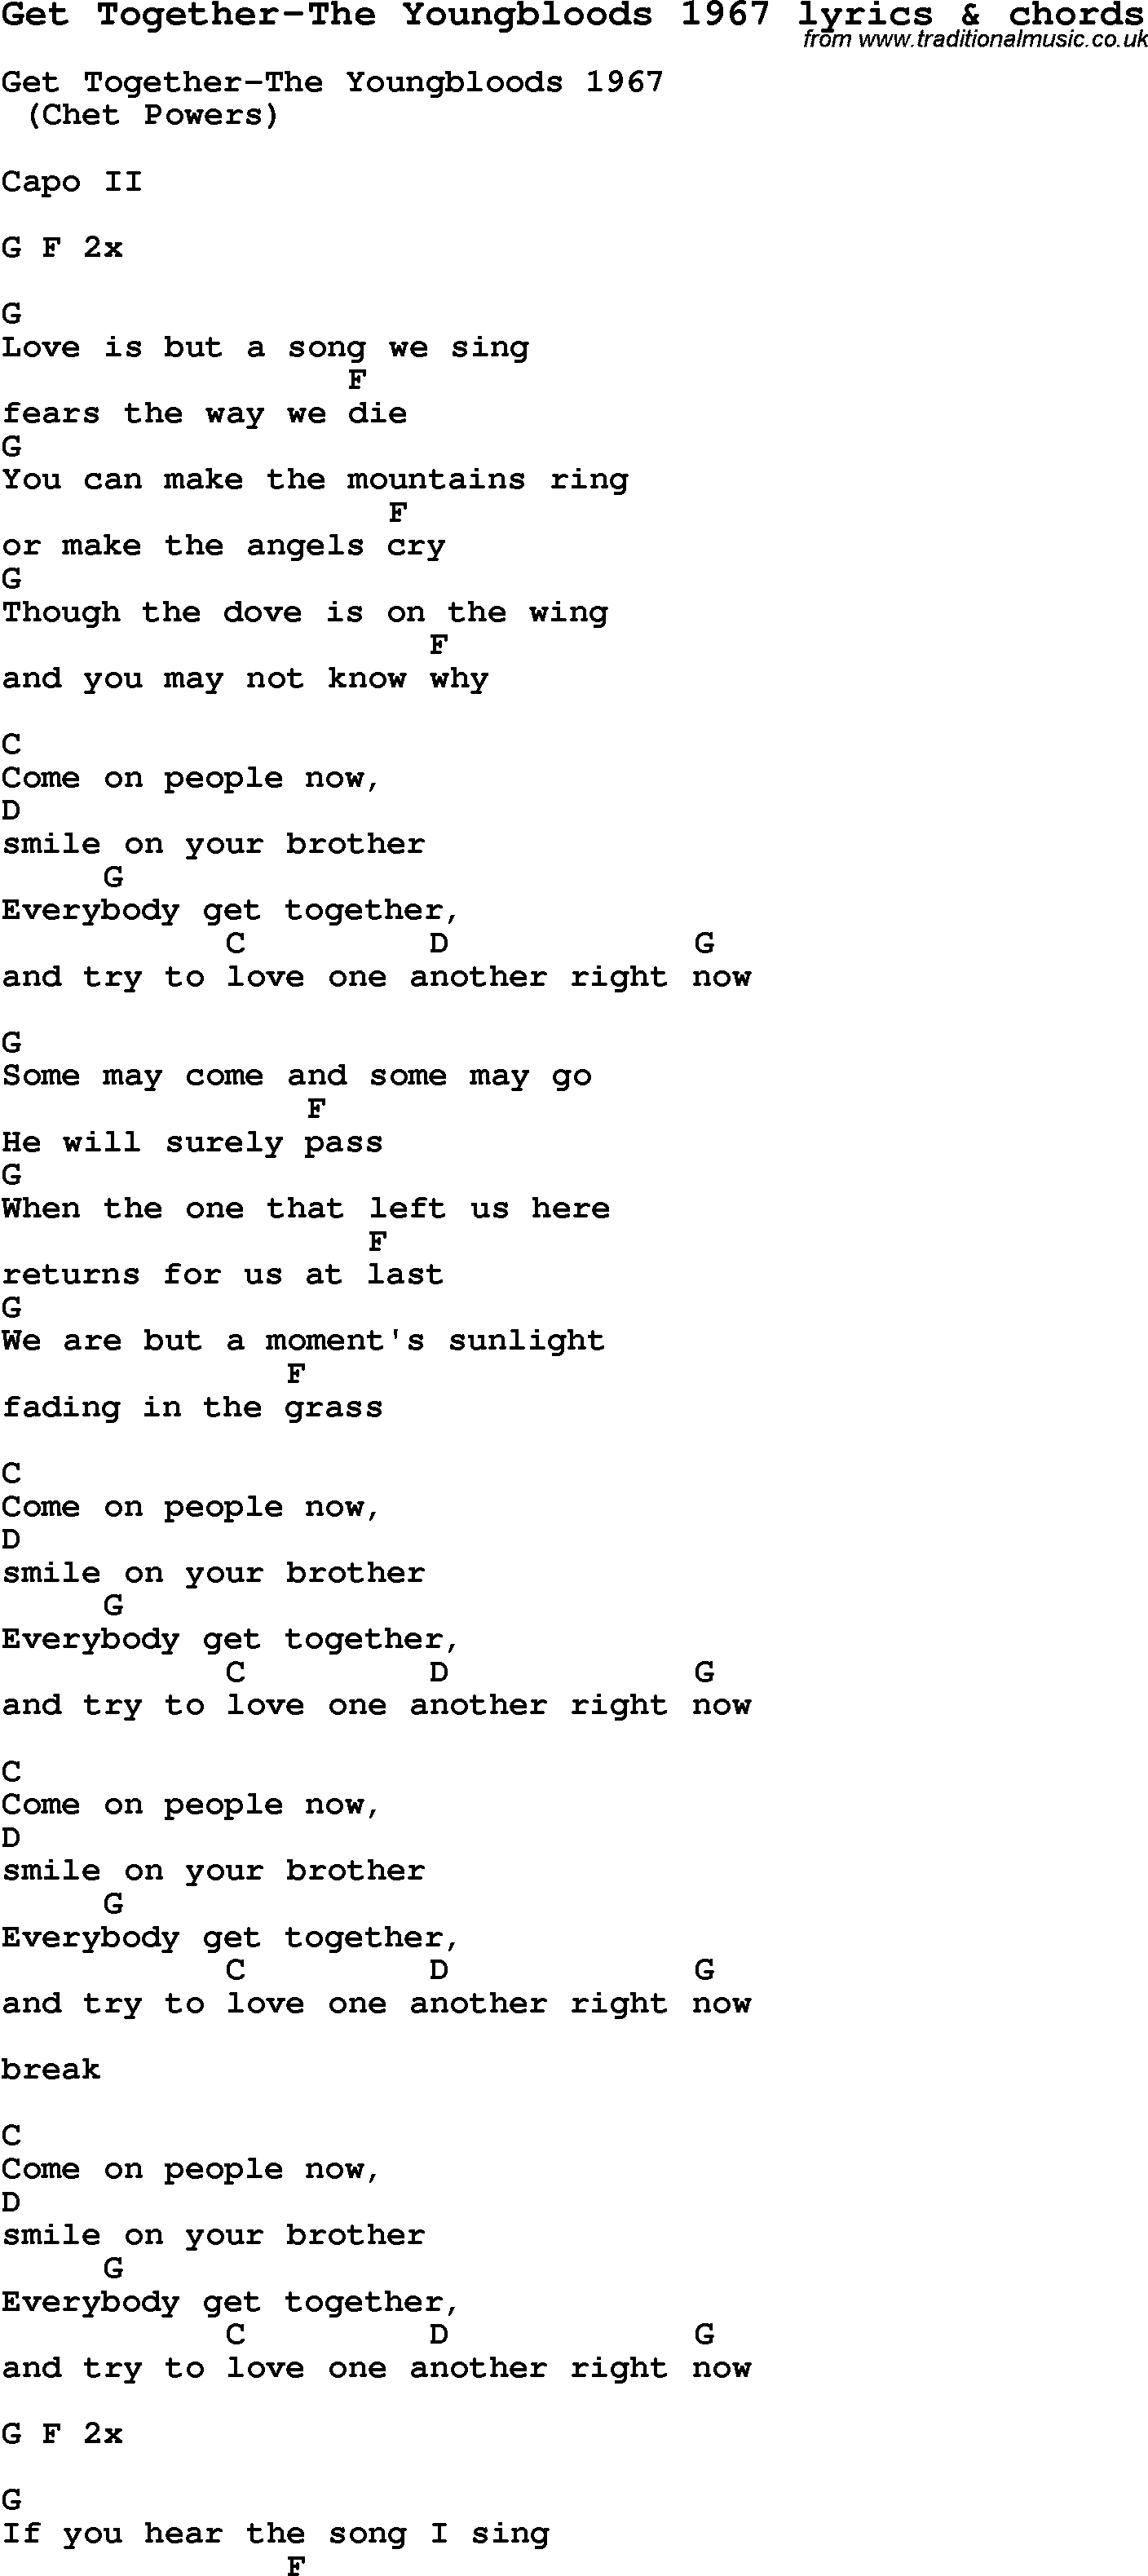 Love song lyrics for get together the youngbloods 1967 with love song lyrics for get together the youngbloods 1967 with chords for ukulele hexwebz Choice Image